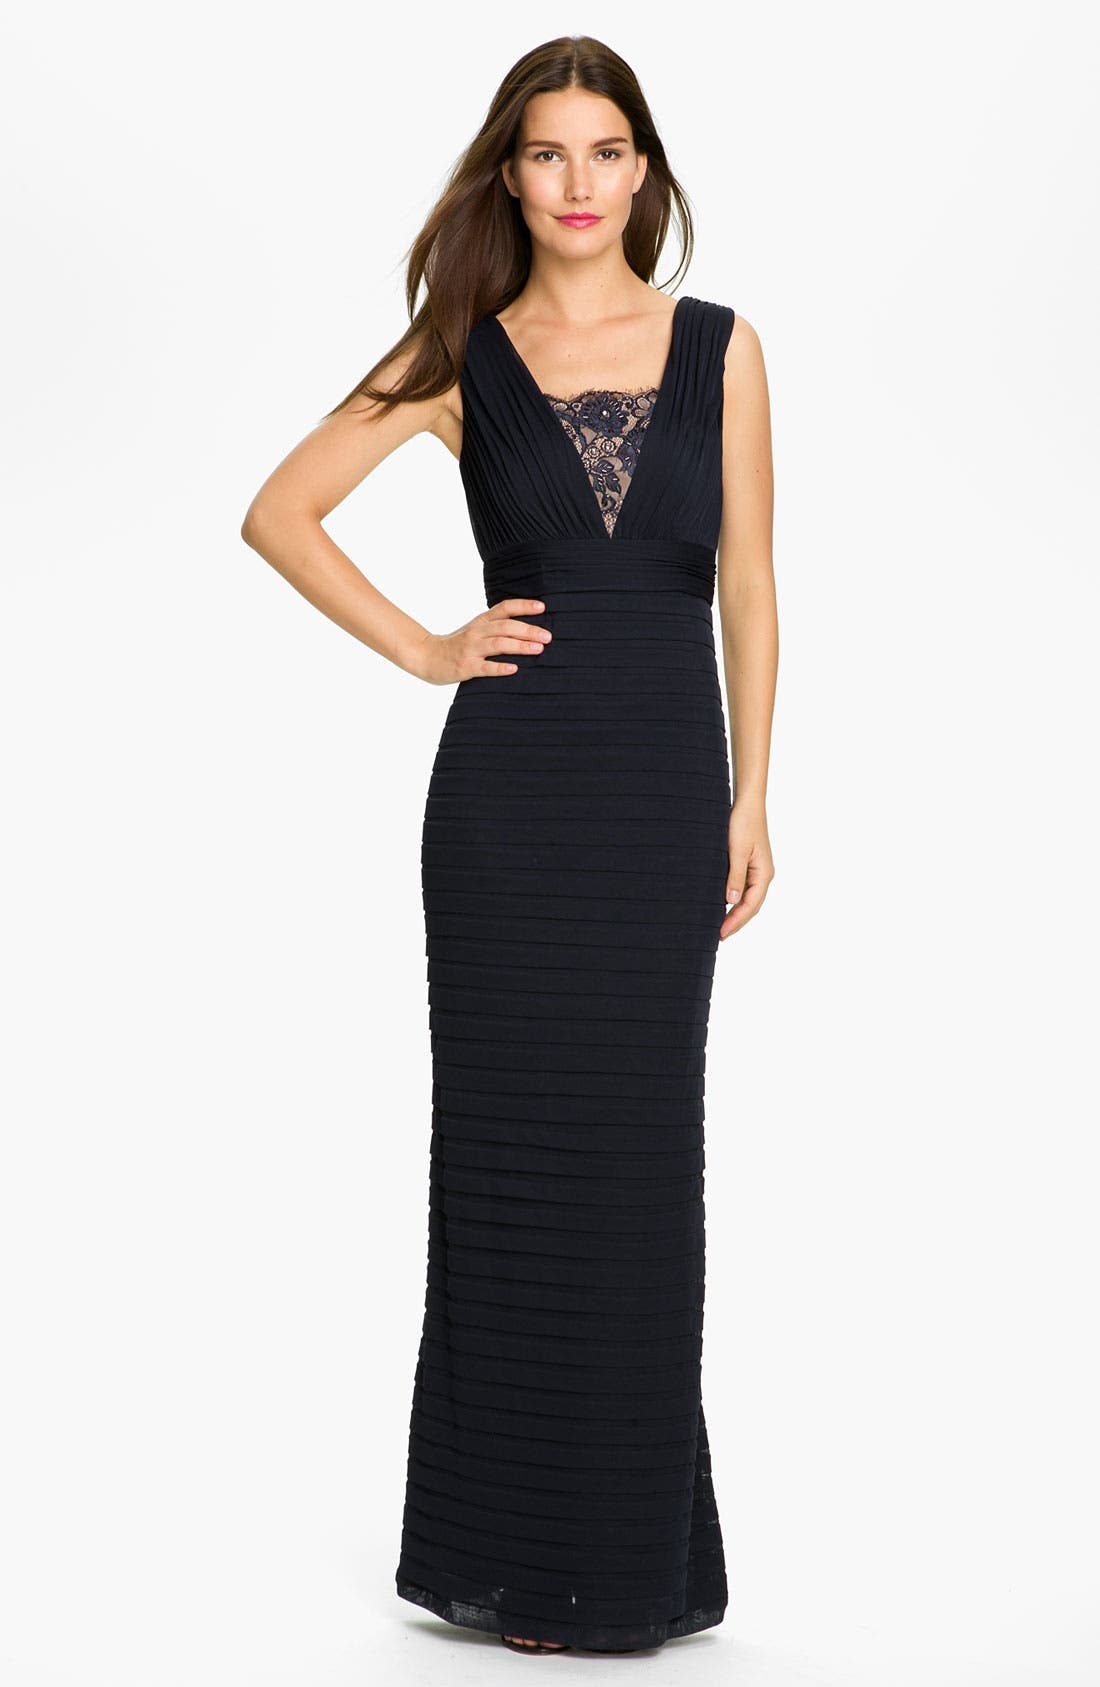 Alternate Image 1 Selected - Adrianna Papell Pleated Lace Inset Mesh Gown (Petite)